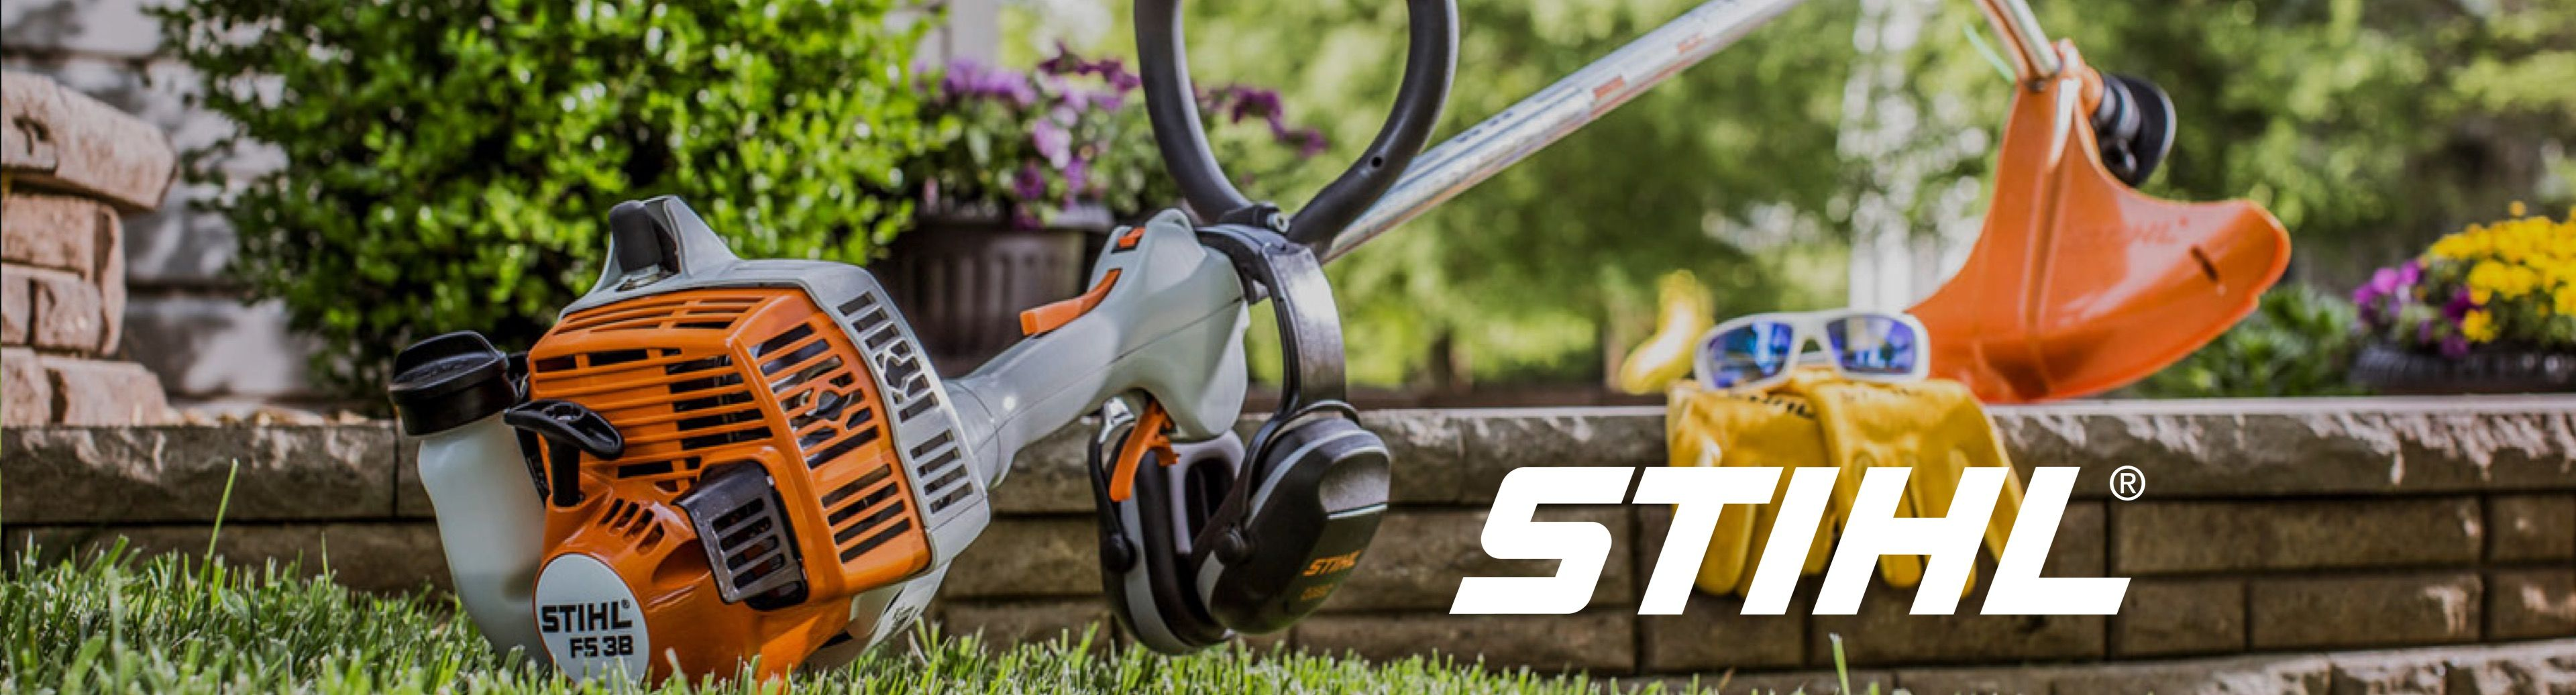 More about Stihl power equipment at Tahlequah Lumber